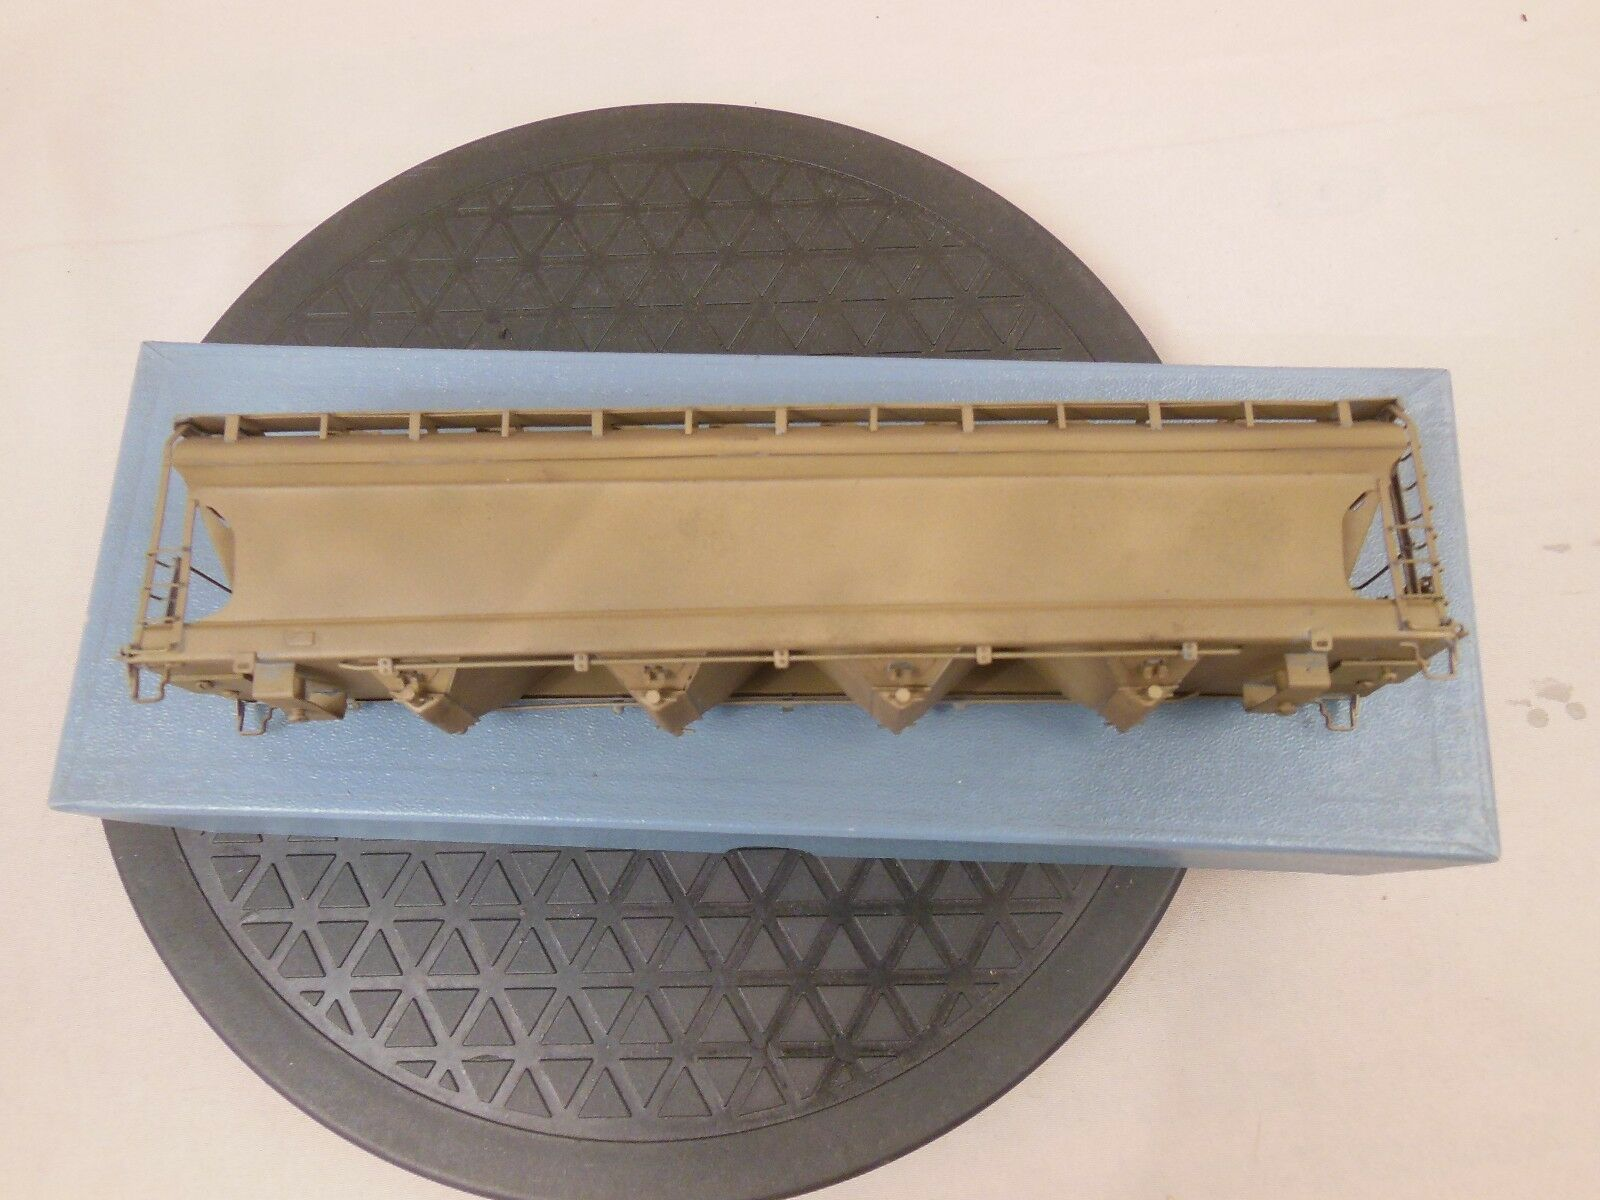 HO WALTHERS BRASS 8851 ACF CENTER FLOW CF 5250 4 BAY COVErot HOPPER CAR BODY 3 3